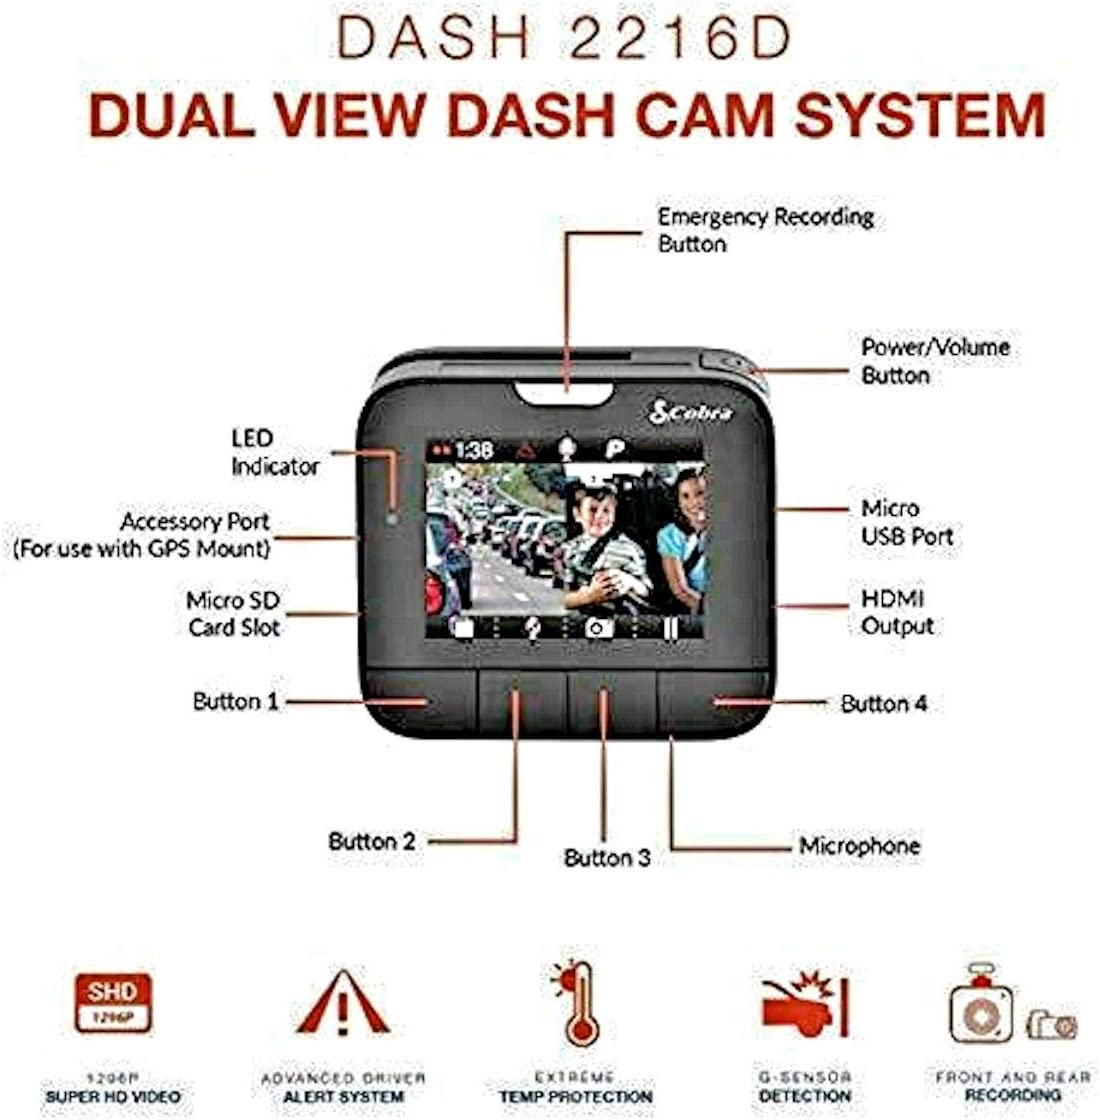 160 Degree Ultra-Wide Angle DVR Cobra Drive HD Dash Cam  with 32GB MicroSD Included Feat.1080p Full HD Front Cam and 720p HD Rear Cam with G-Sensor Auto Accident Detection Loop Recording